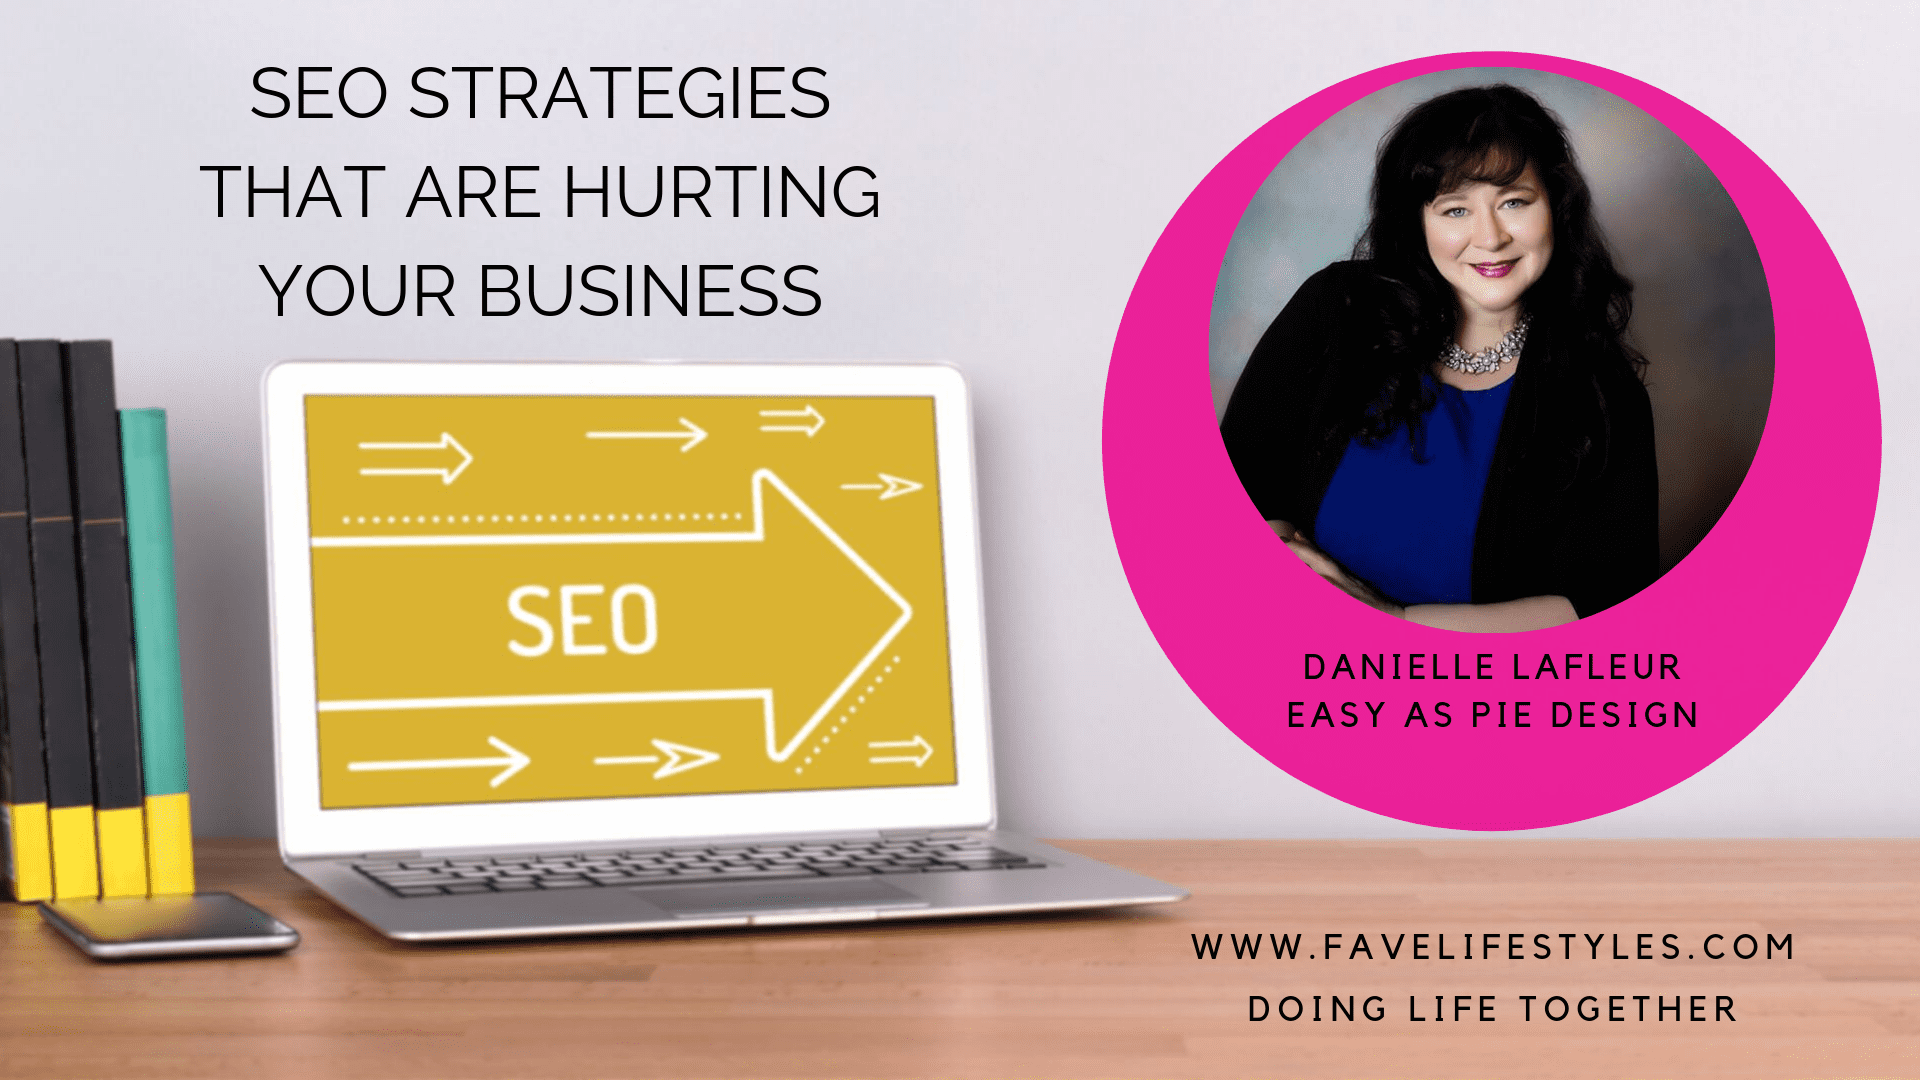 SEO Strategies That Are Hurting Your Business